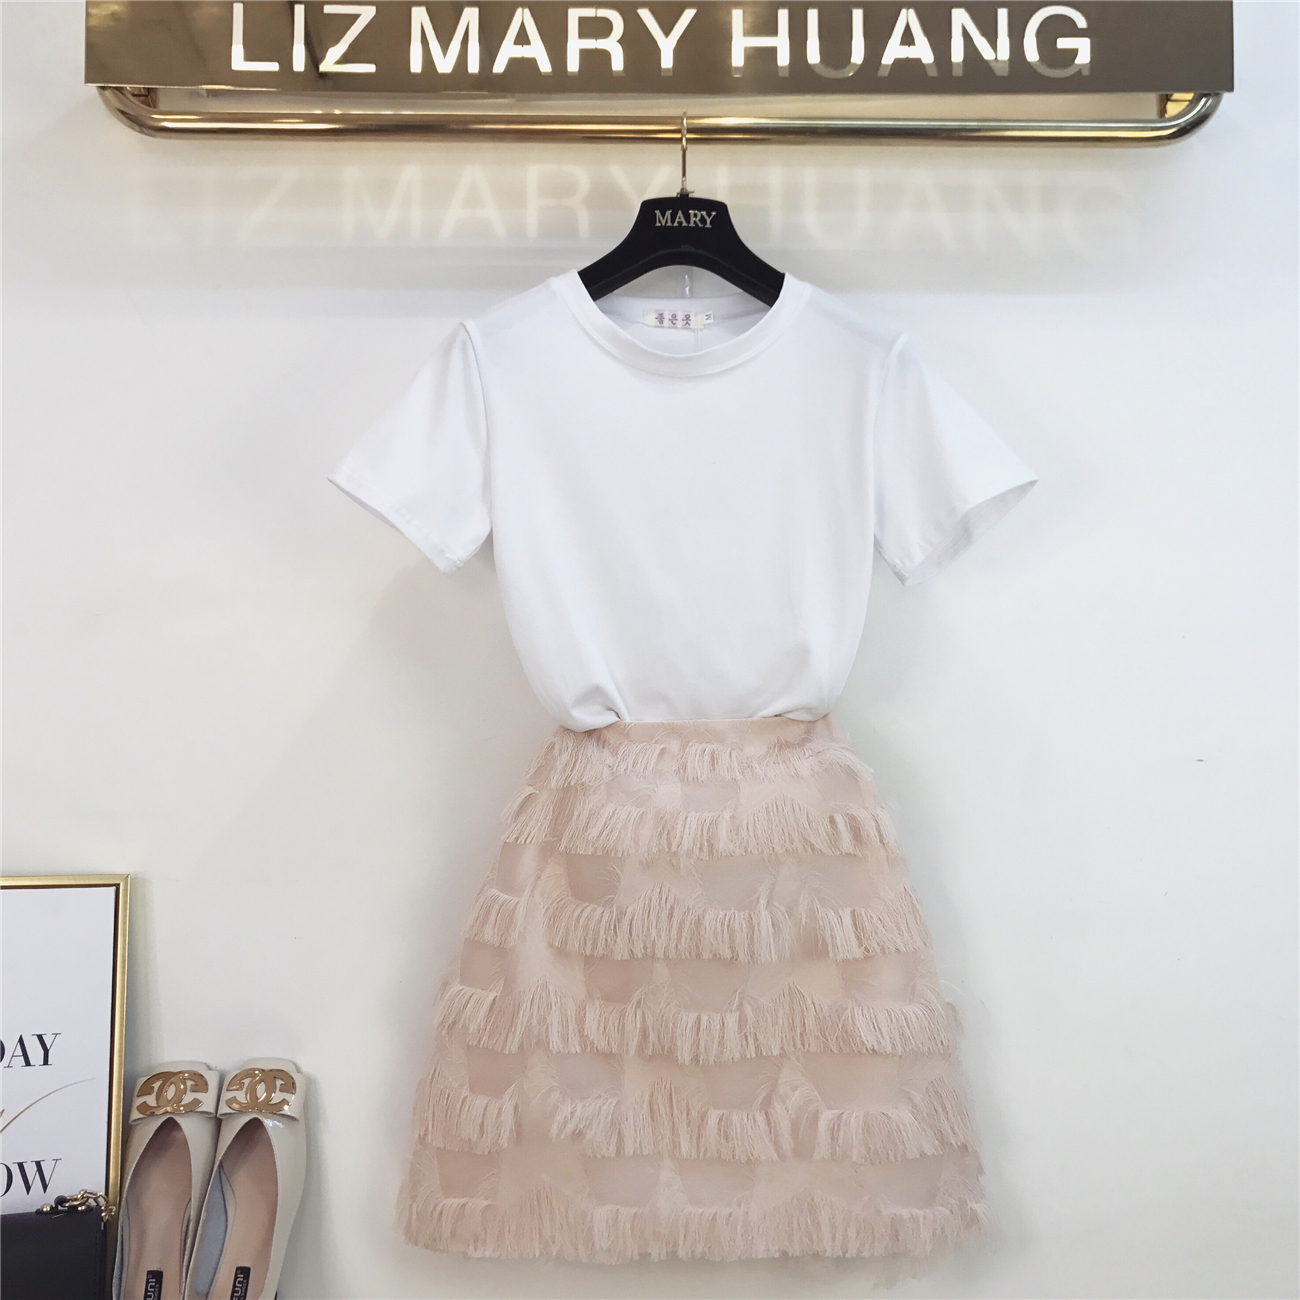 2019 New Summer Fashion Women's Sets Solid White Short Sleeve T-shirts + Short A-line Tassel Skirts Students Suits